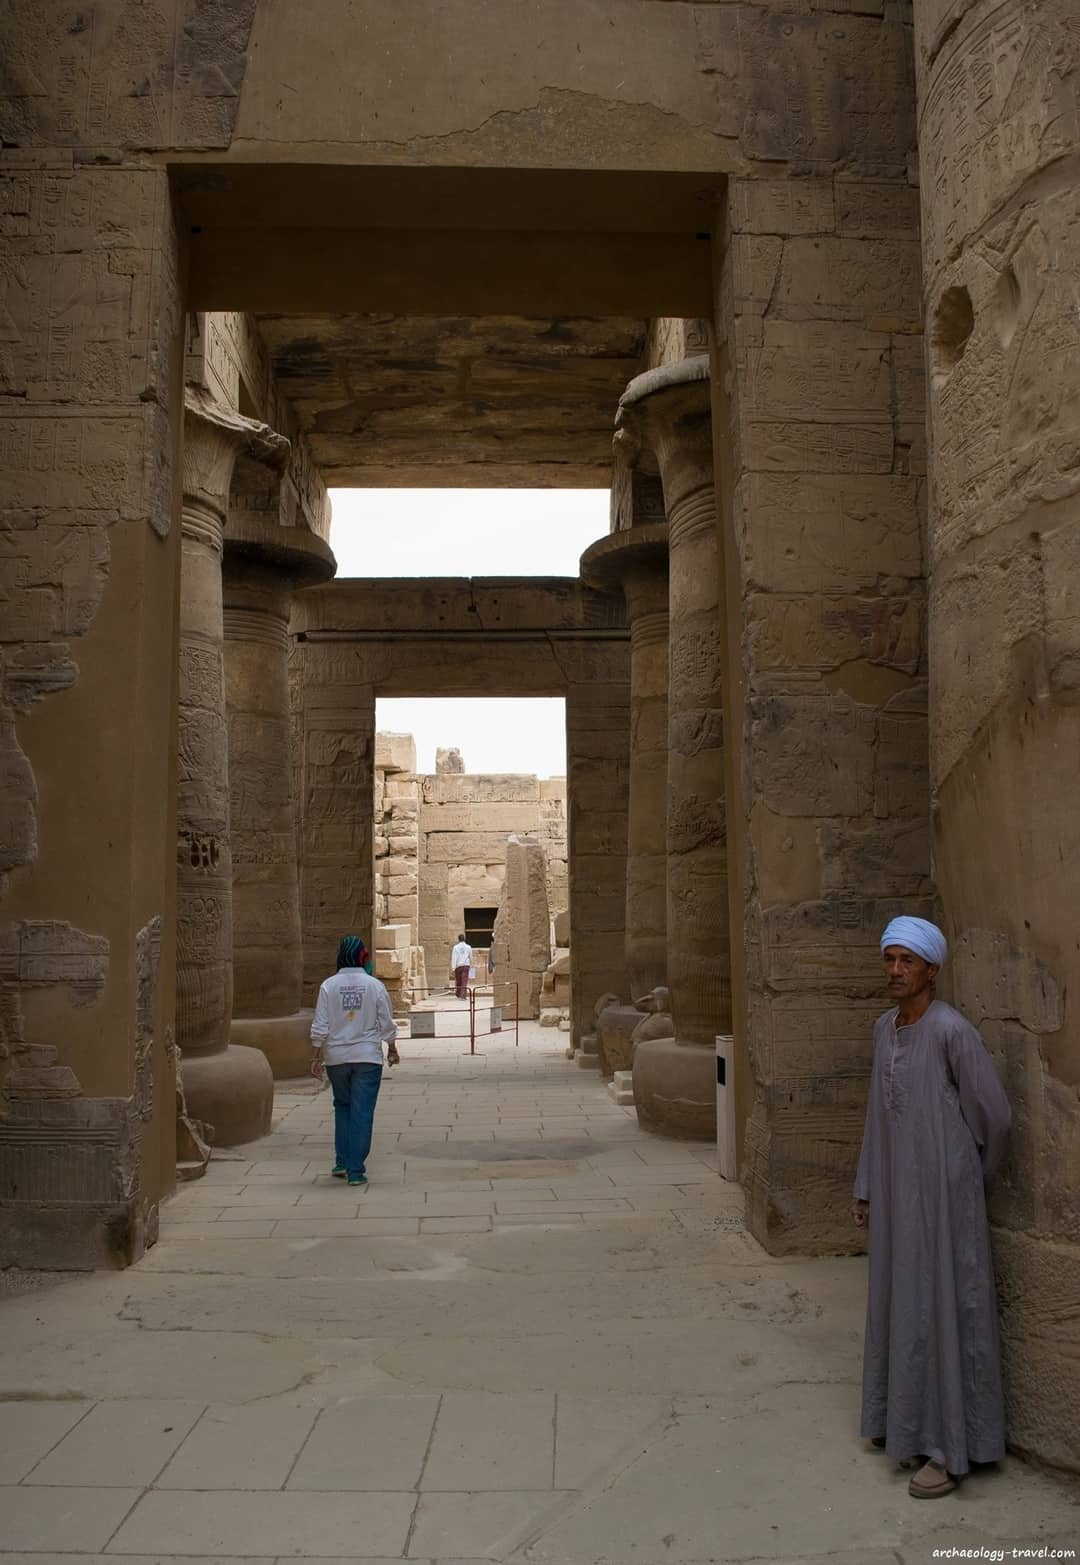 Looking through the Hypostyle Hall into the Sanctuary of the Temple of Khonsu.